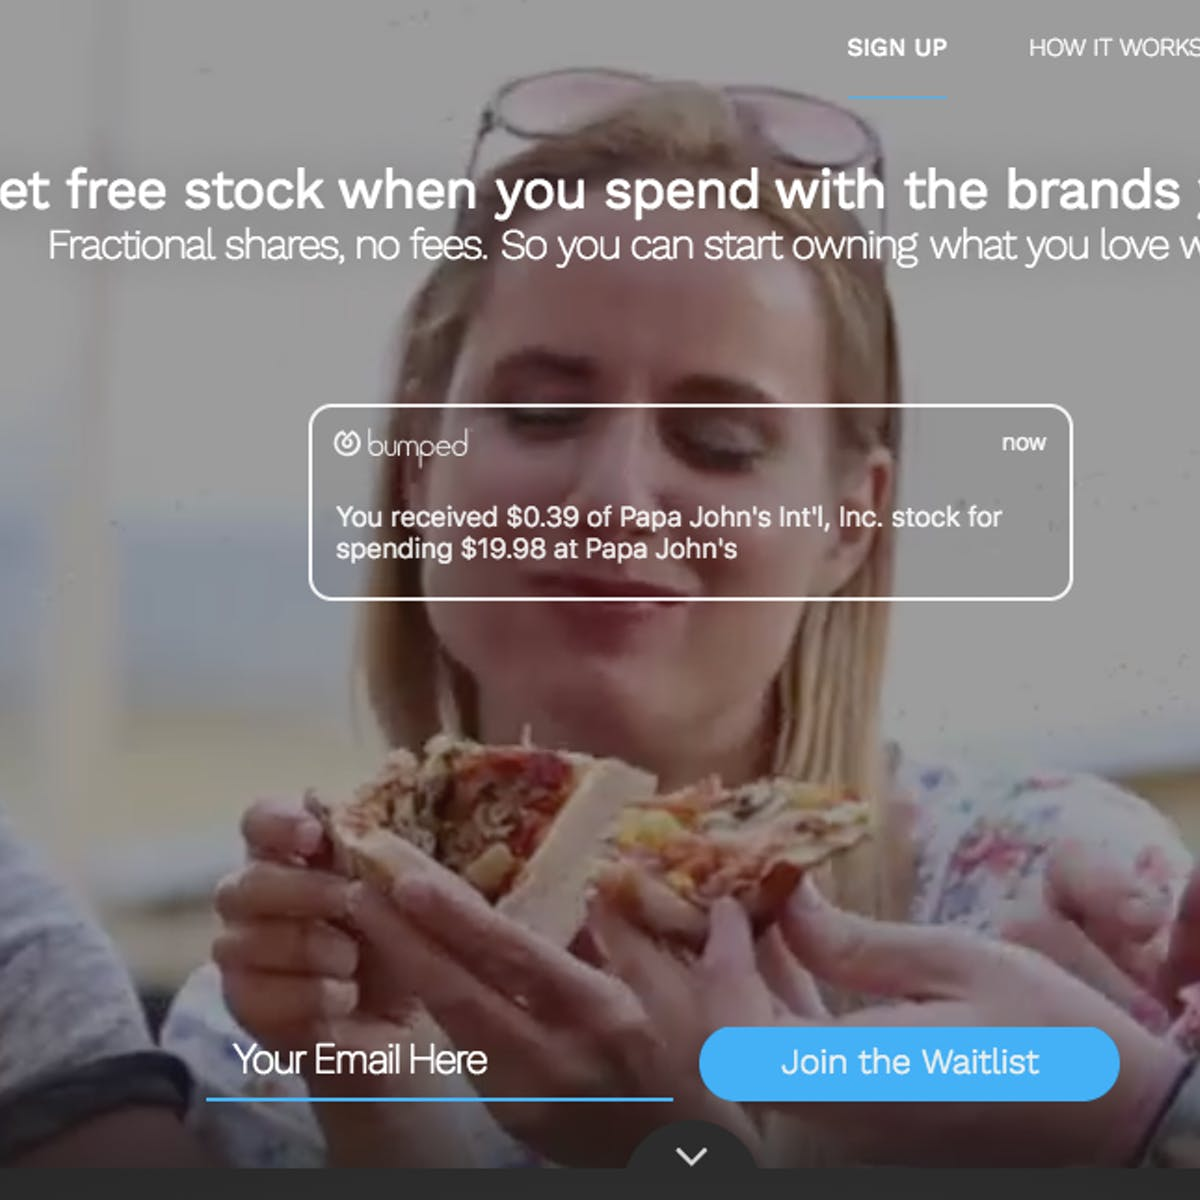 Fintech: Bumped Wants To Give Stock to Loyal Customers Instead of Cash Back